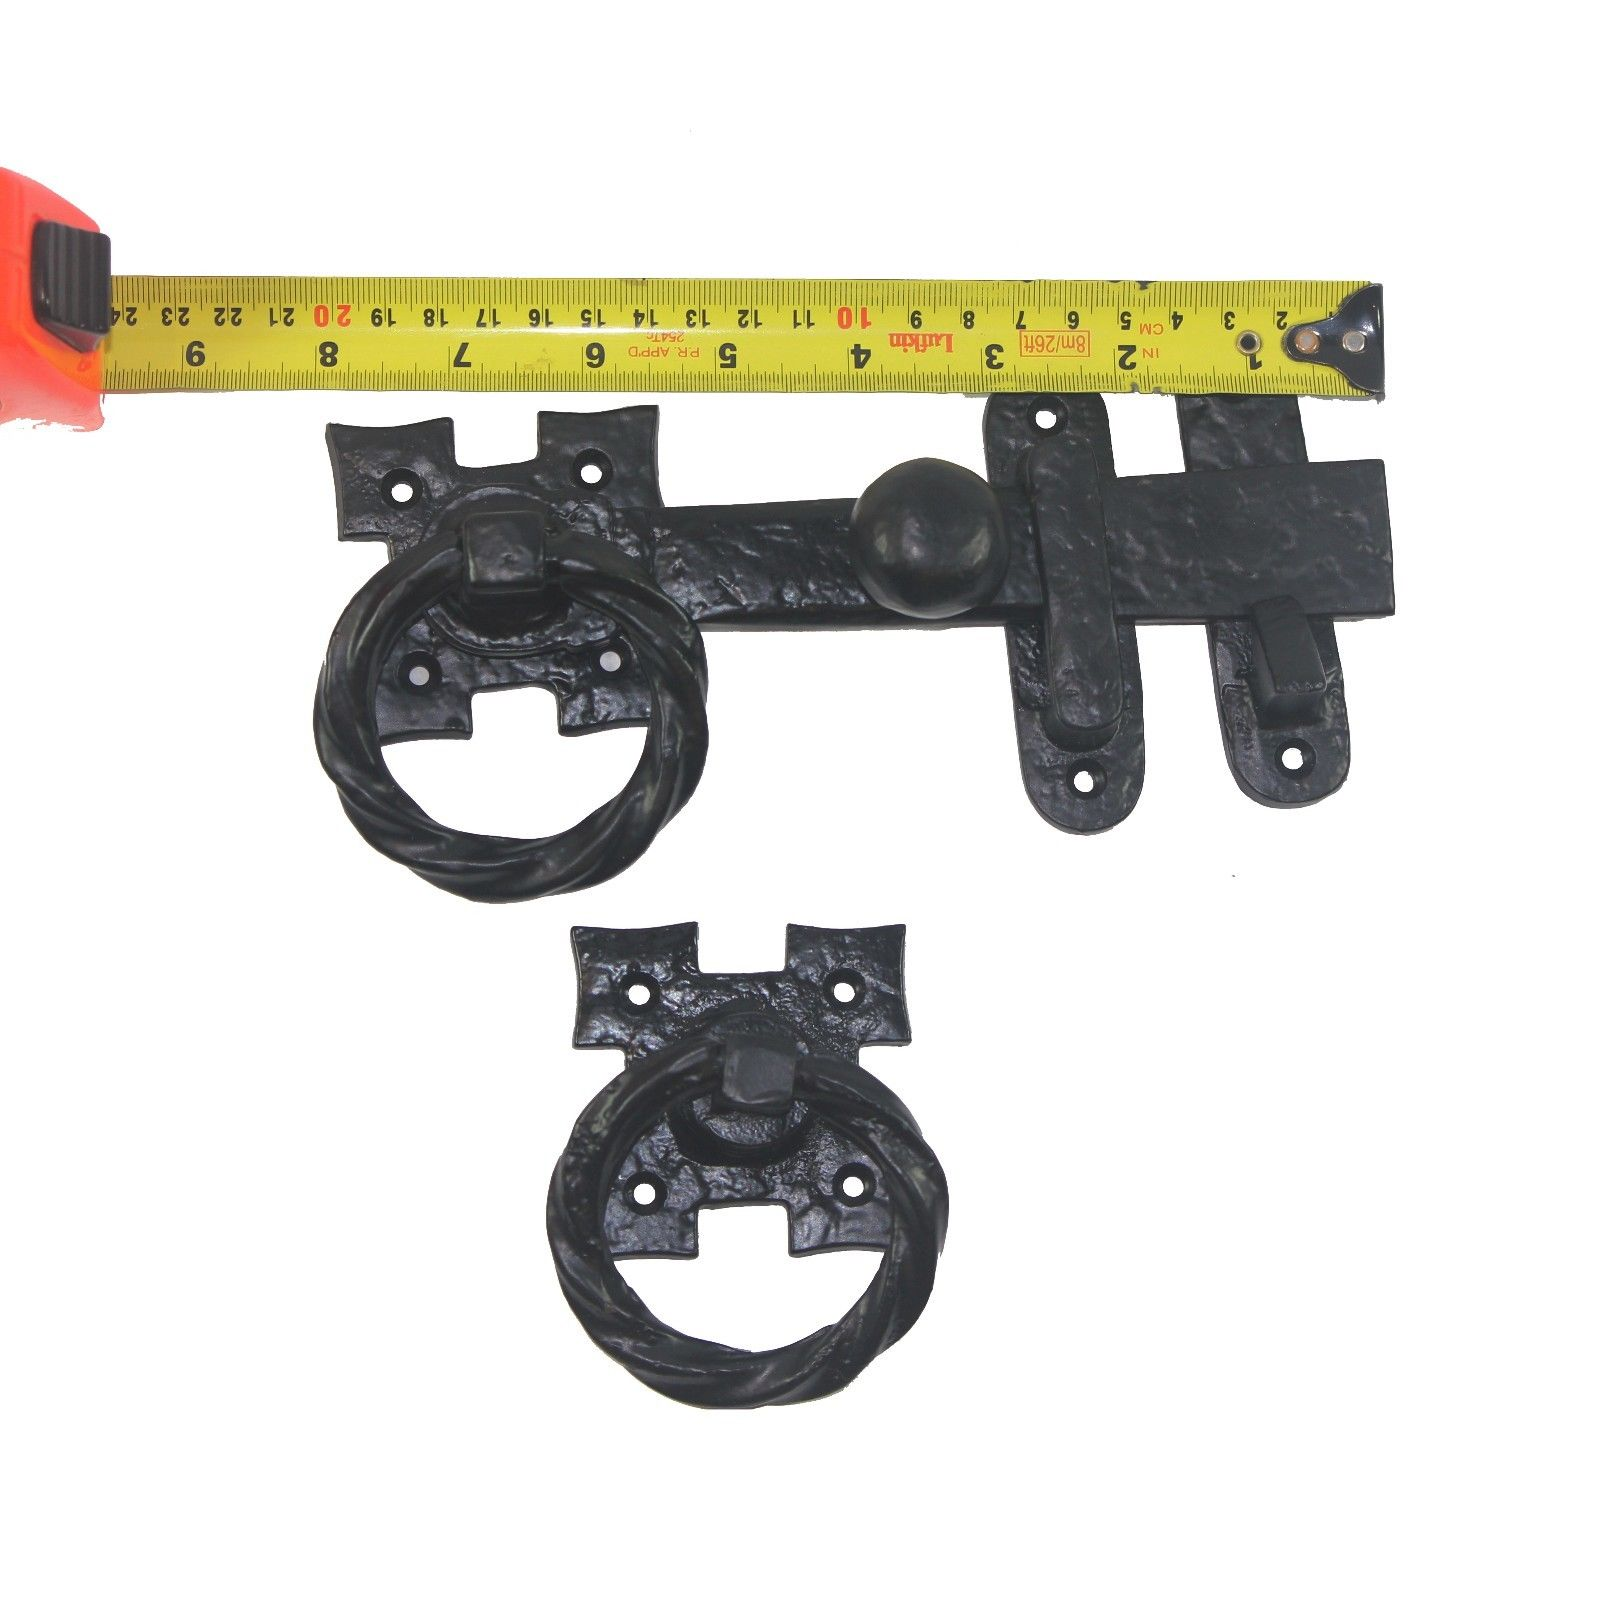 Nuvo Iron Antique Look Colonial Ring Latch Designed for Wood Gates, Doors - Black